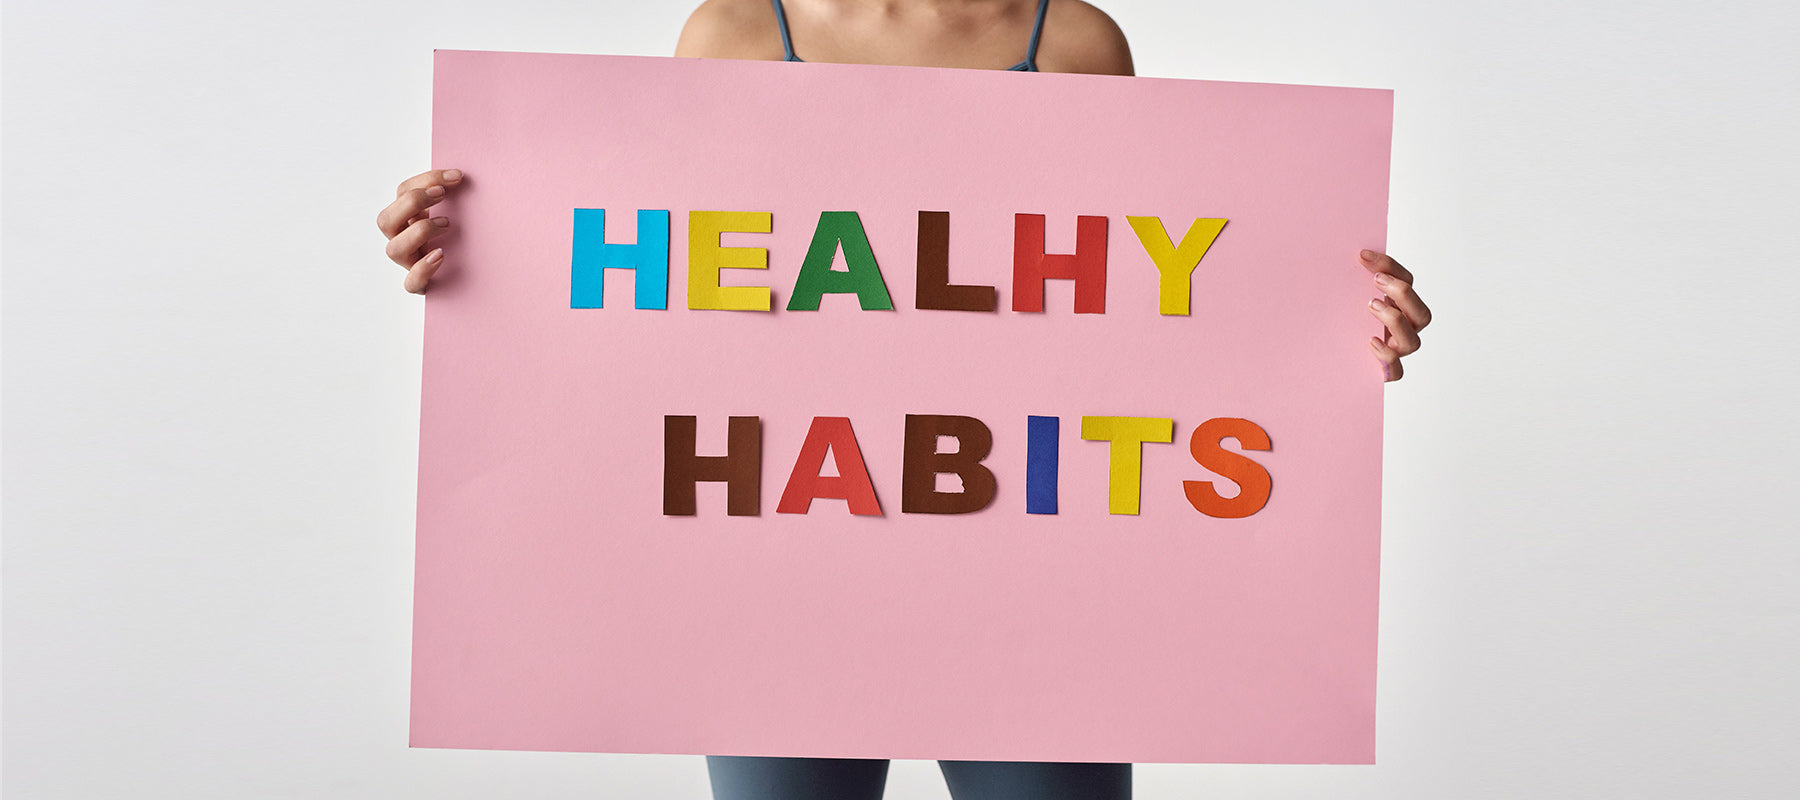 Healthy Habits Poster Woman Holding